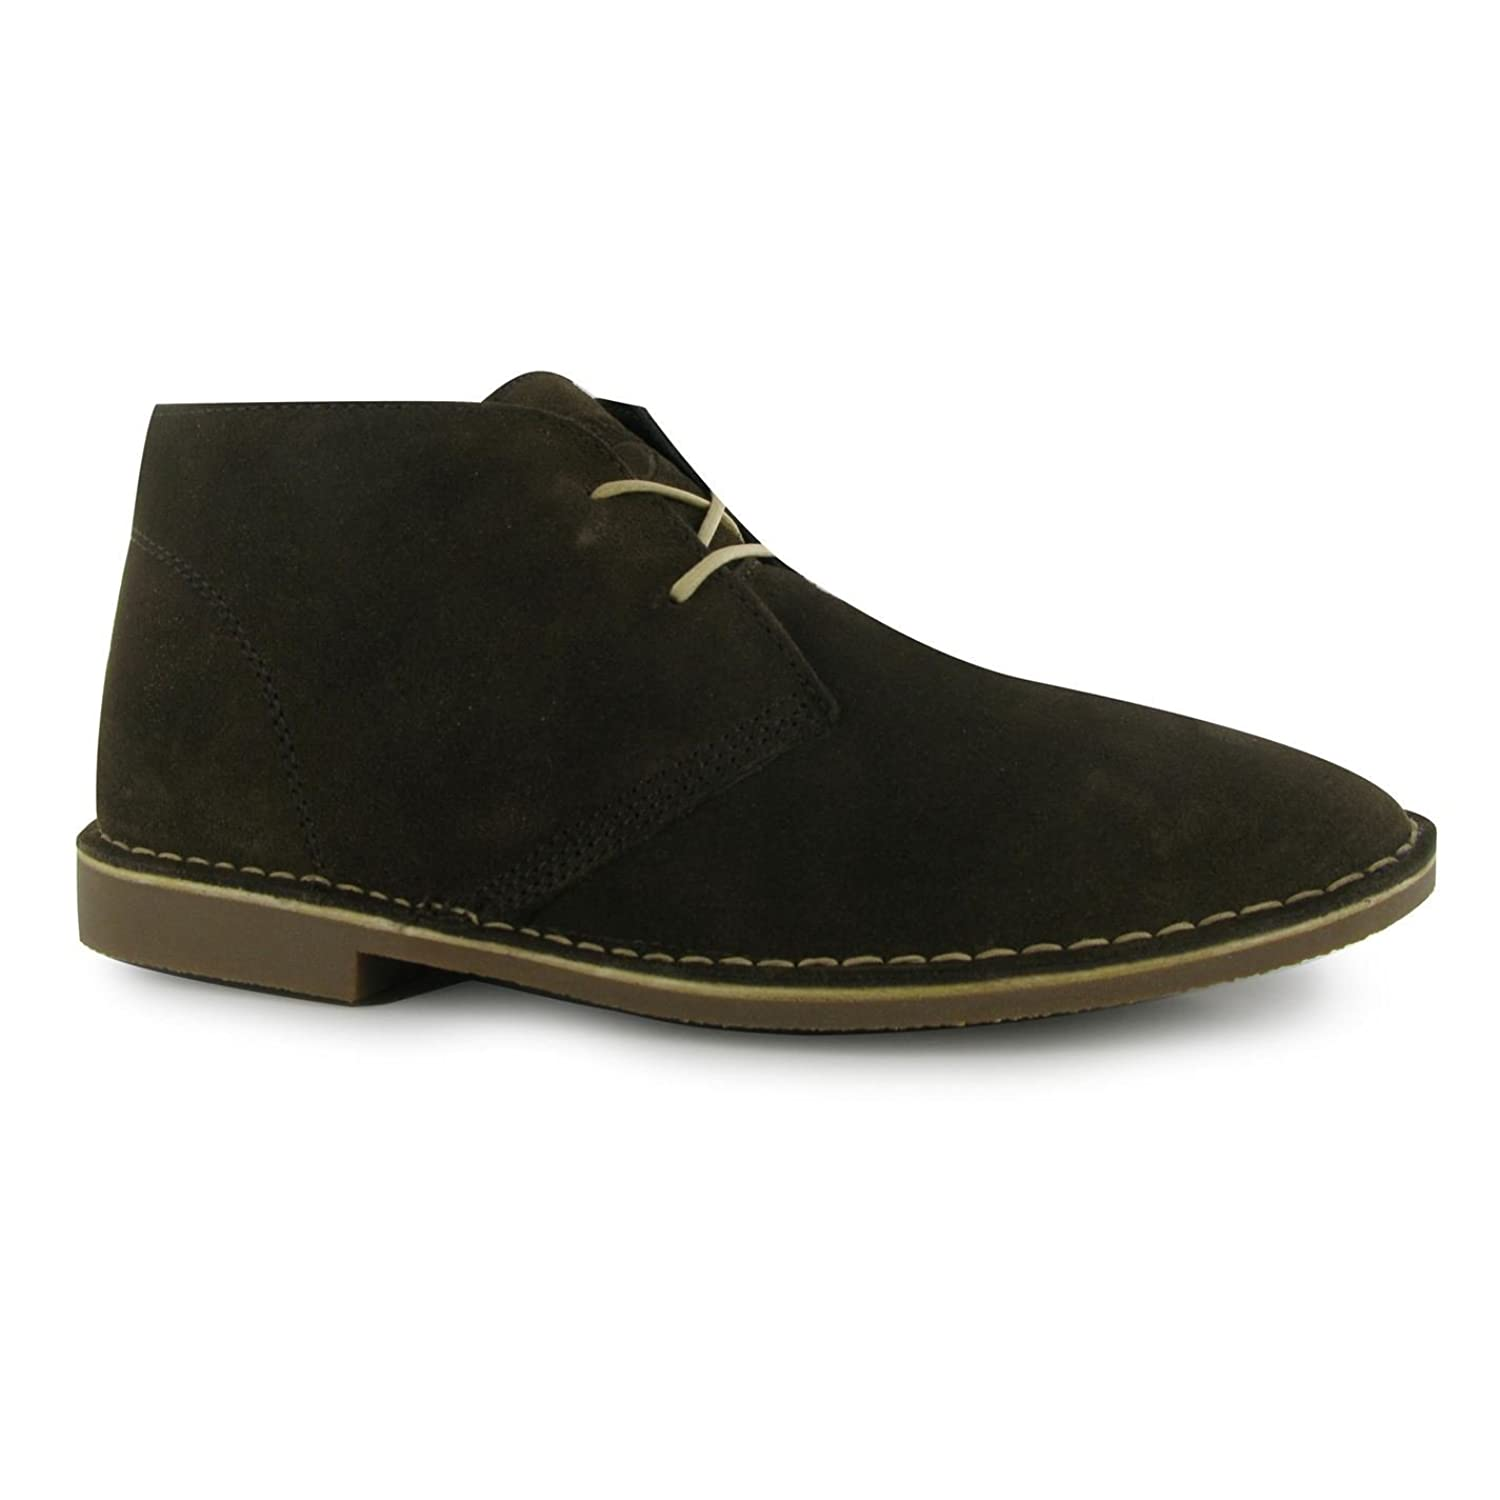 Kangol Mens Desert Boots Lace Up Cushioned Insole Padded Ankle Footwear:  Amazon.co.uk: Shoes & Bags